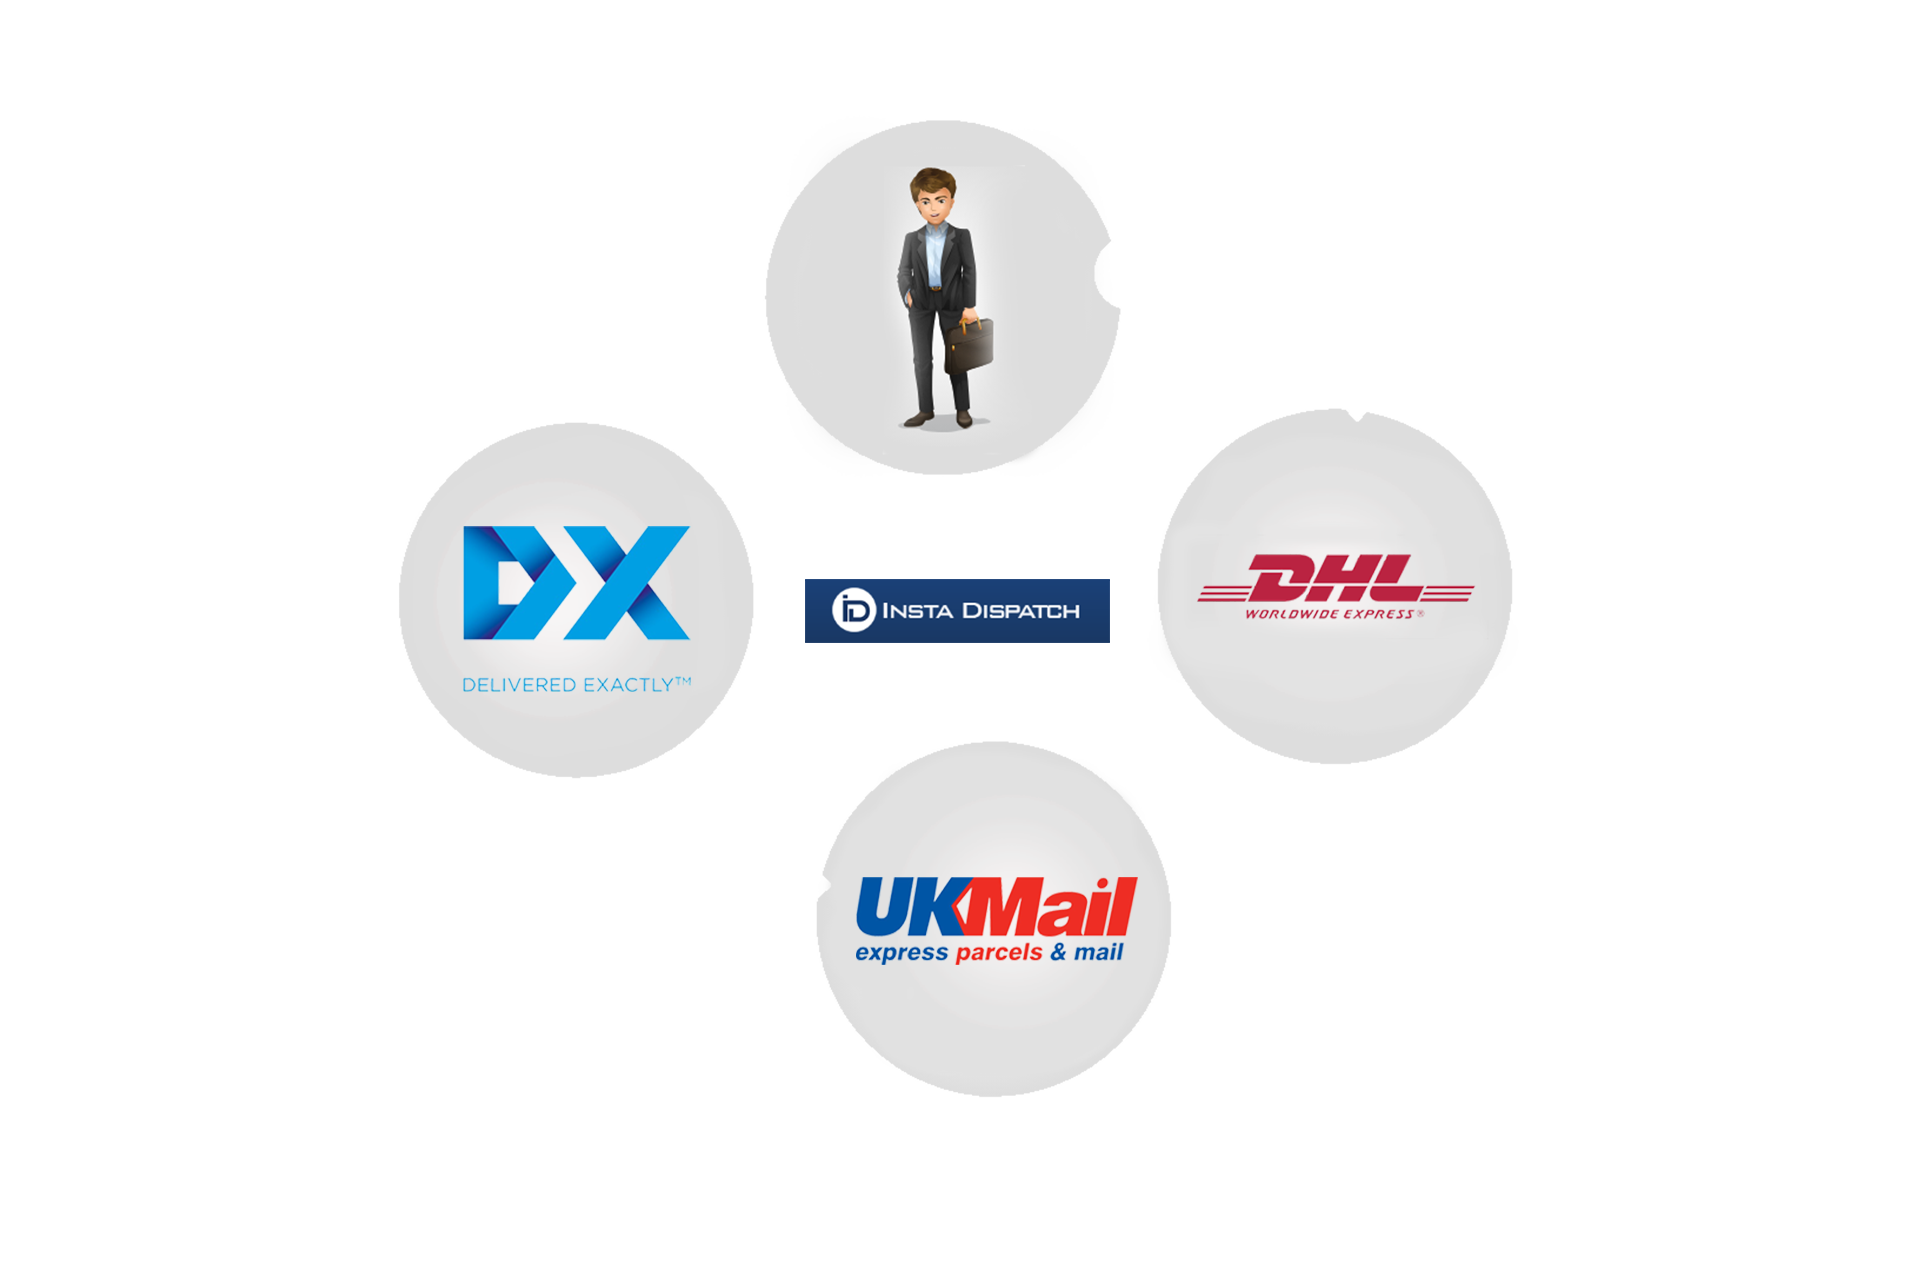 Which is the most reliable courier service management software? - Quora